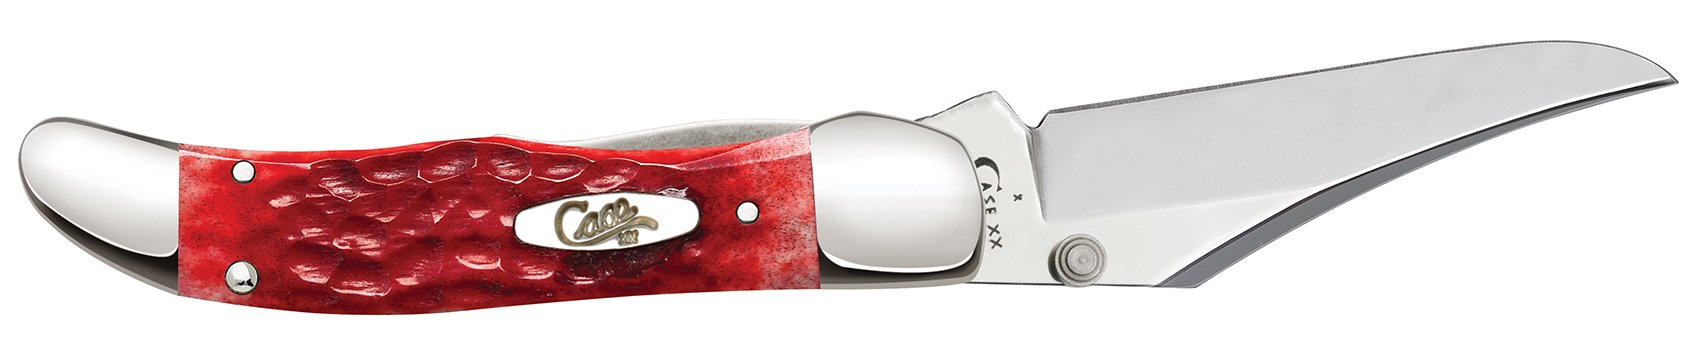 Kickstart® Dark Red Bone Standard Jig Chrome Vanadium Mid-Folding Hunter